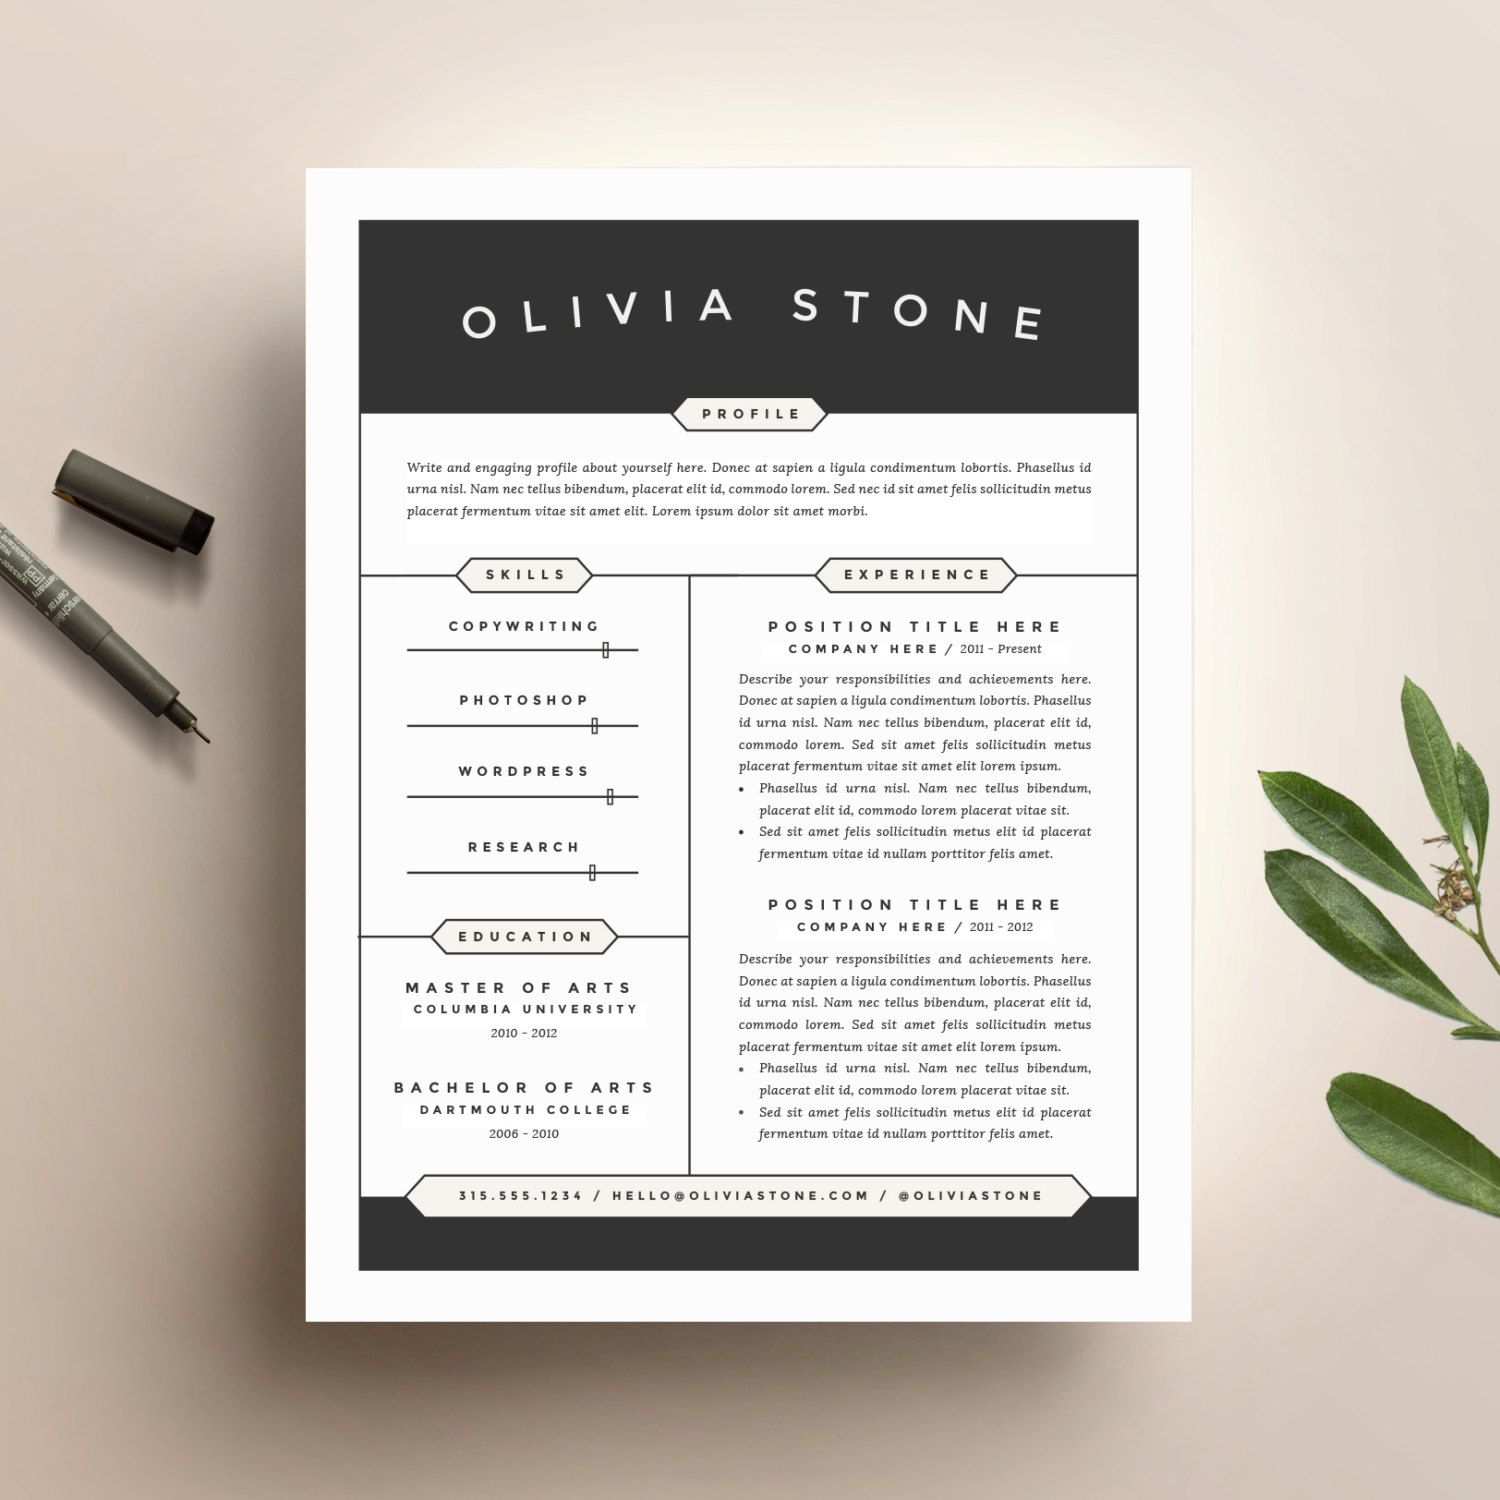 creative resume template and cover letter by refineryresumeco - Good Resume Cover Letter Sample